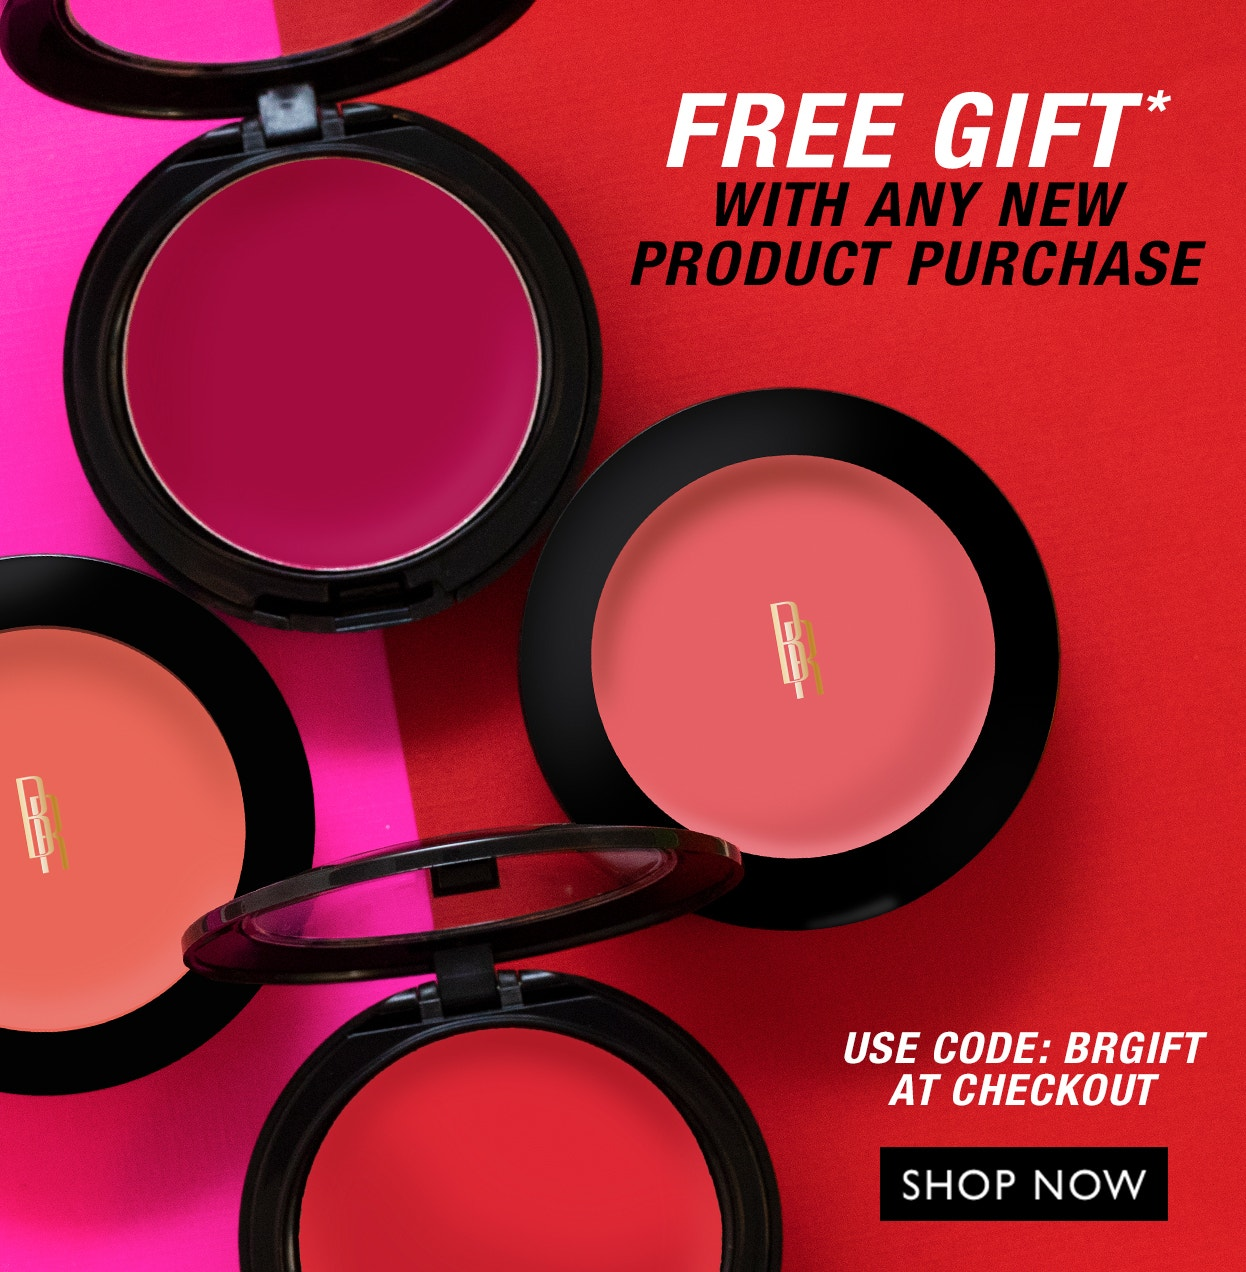 Free Gift w/ Any New product purchase | Use Code: BRGIFT | Shop Now!